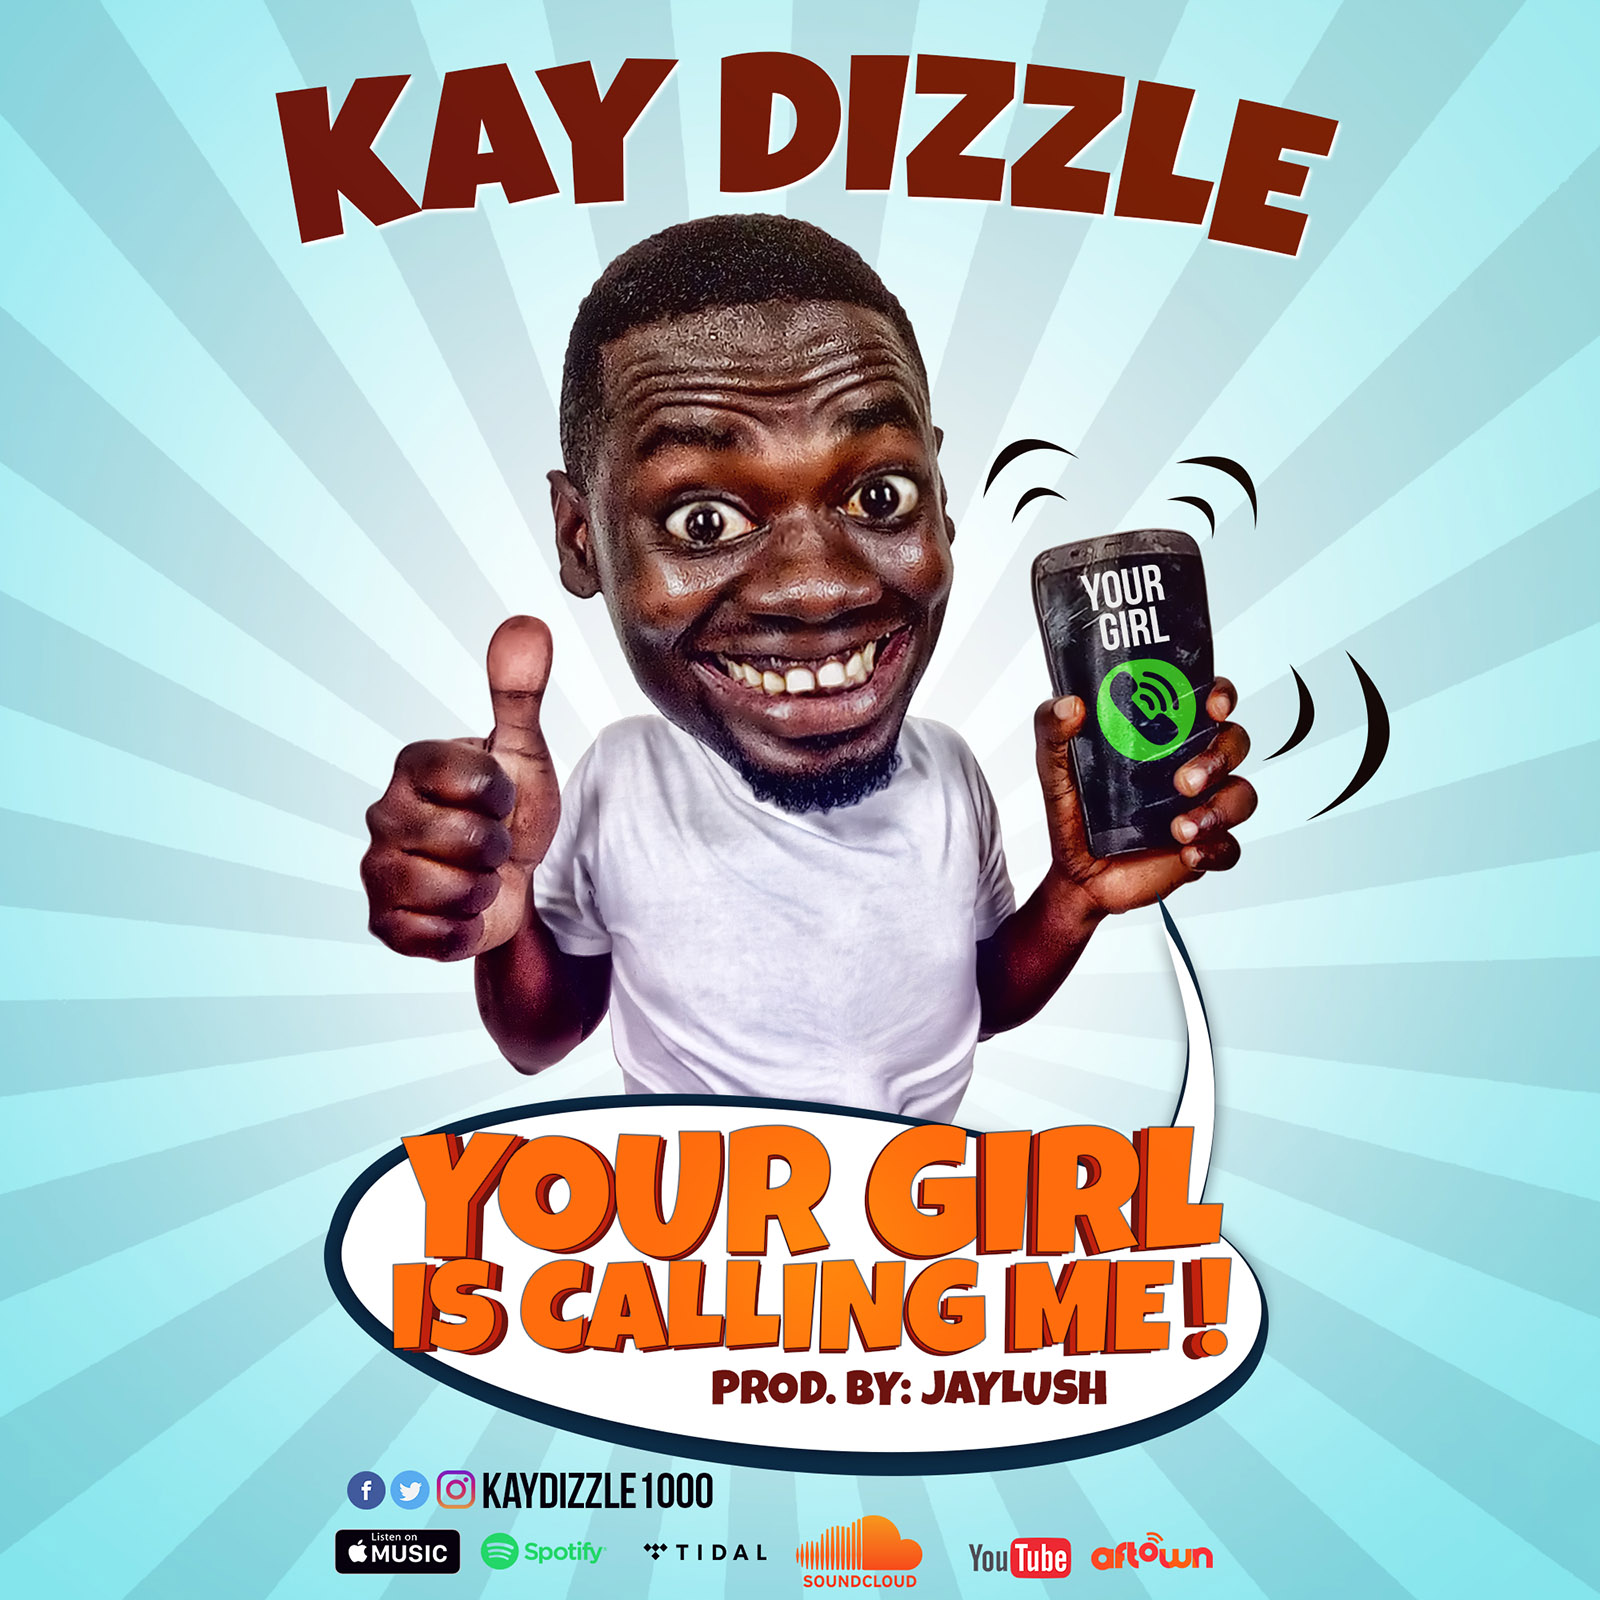 Your Girl Is Calling Me by Kay Dizzle